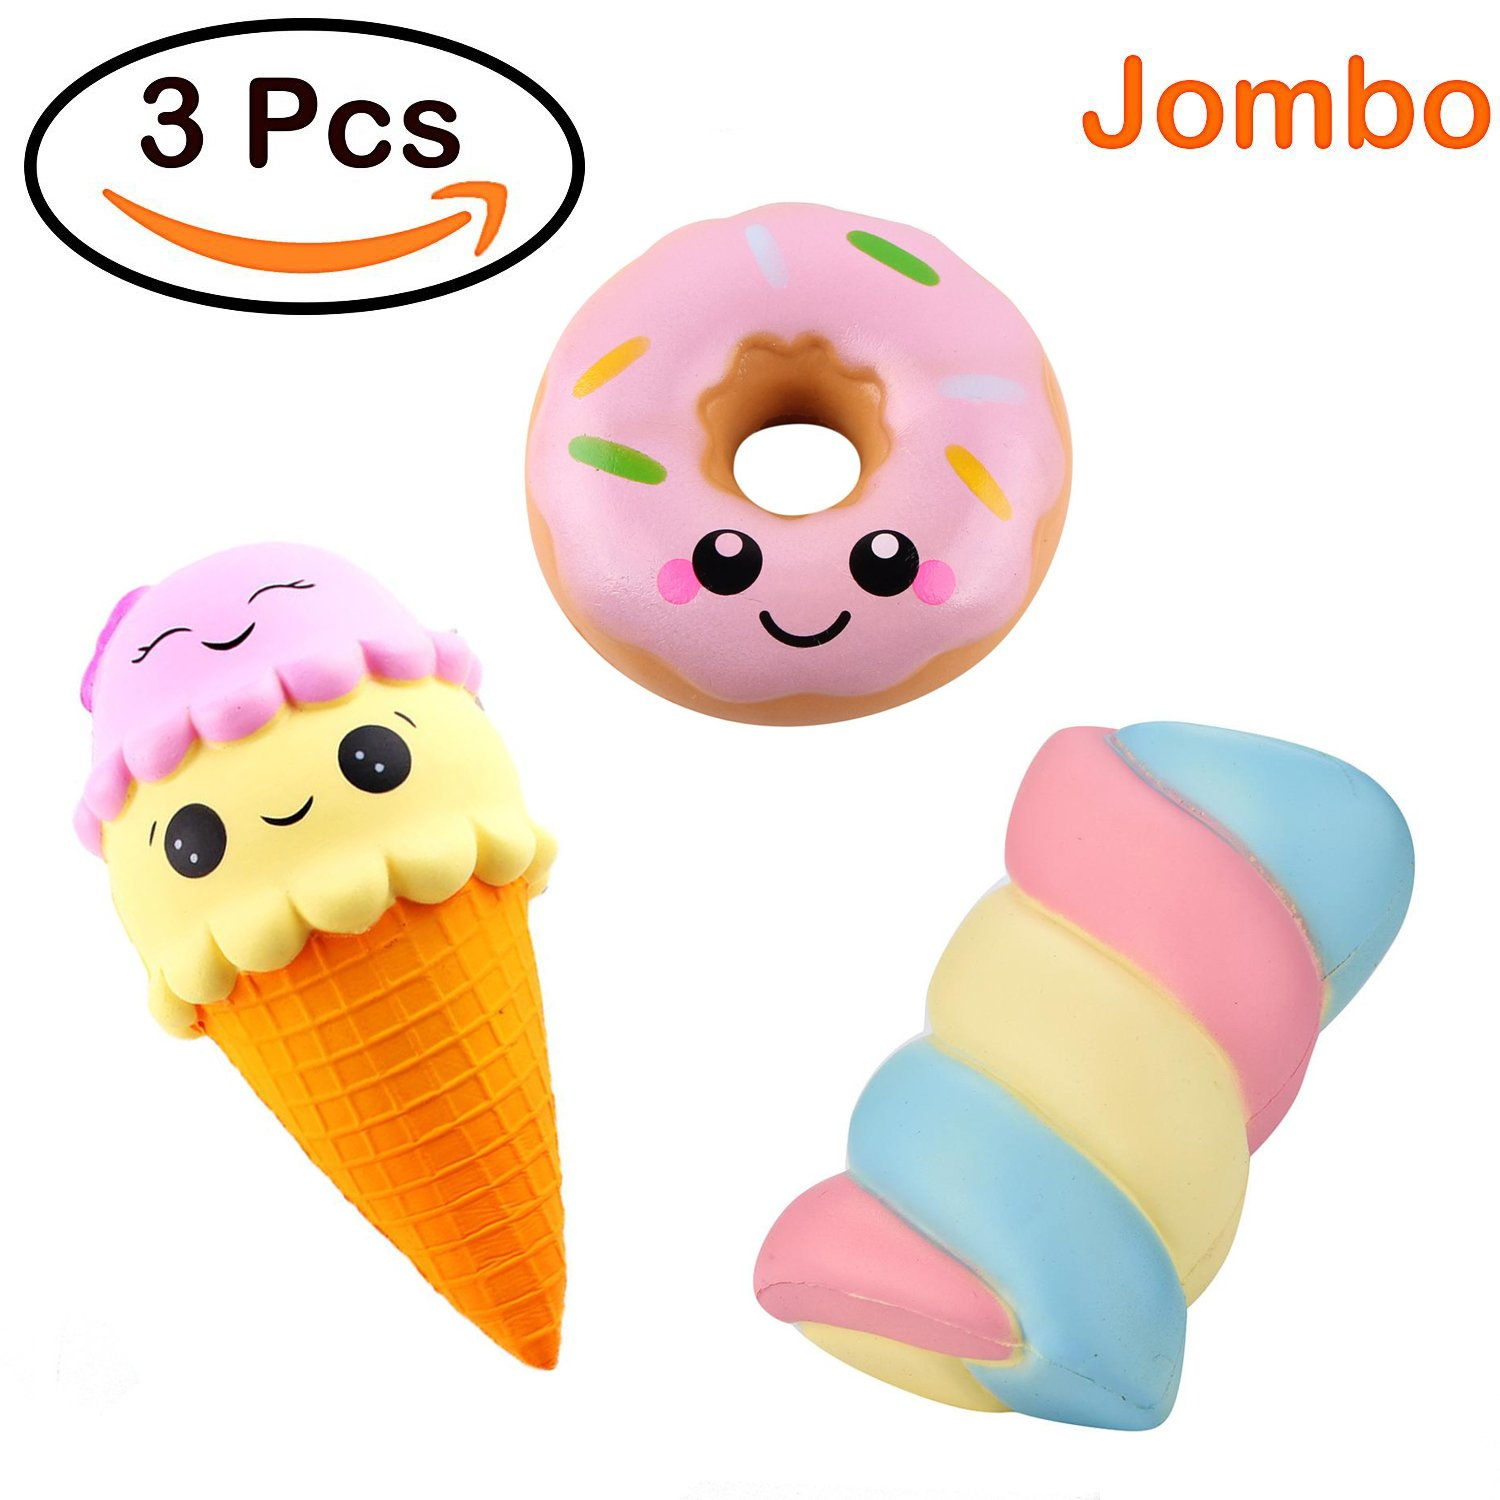 Joykith Kawaii Jumbo Ice Cream &Spun Sugar Doughnut set Squishy Slow Rising Sweet Scented Vent Charms Kid Toy Hand Toy, Stress Relief Toy, decorative props Doll Gift Fun Large